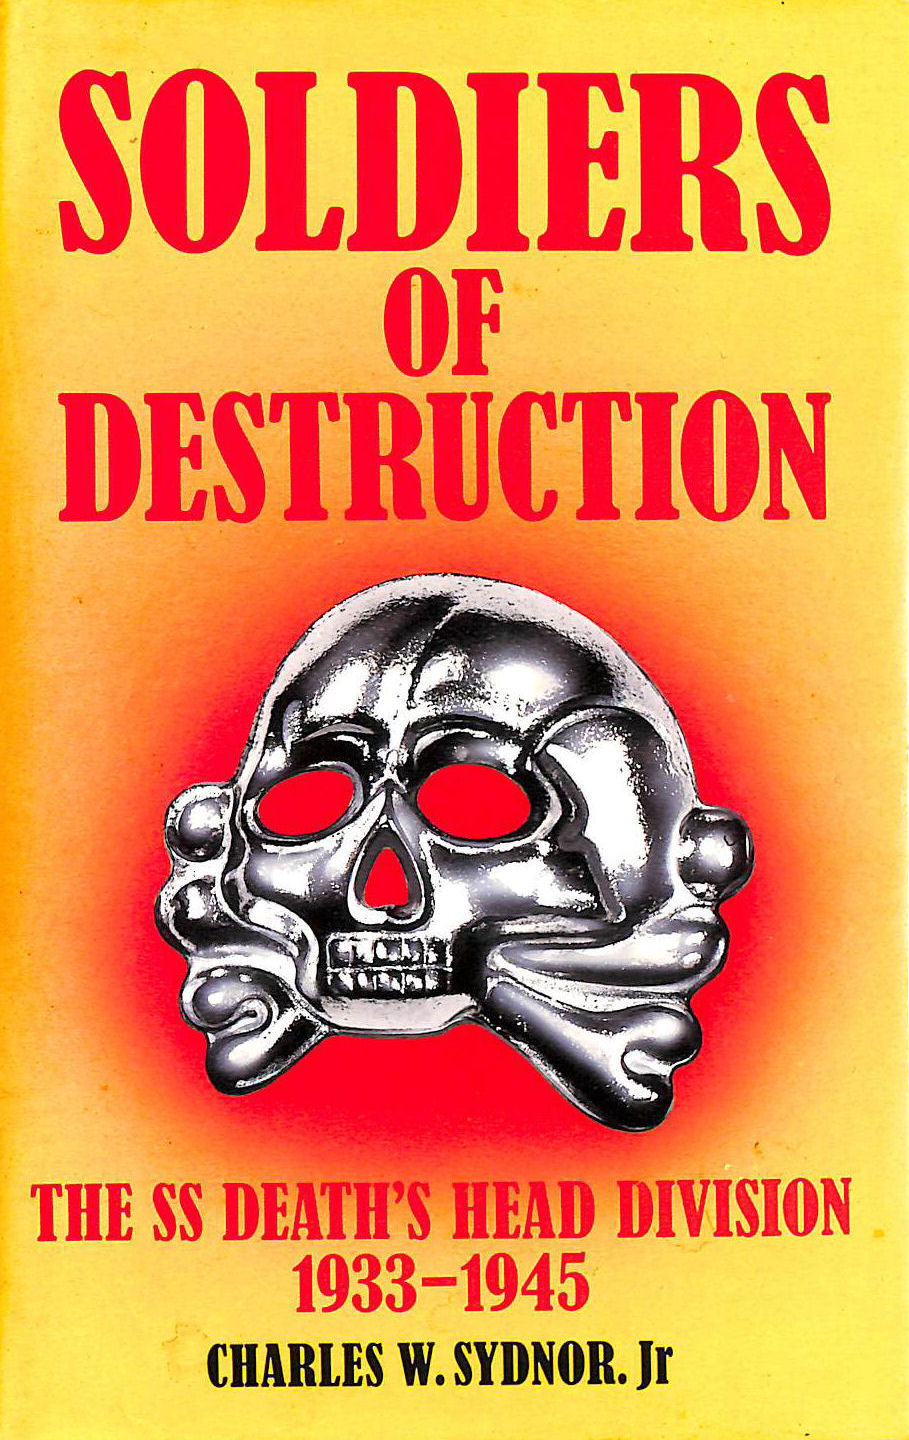 Image for Soldiers Of Destruction: The SS Death's Head Division 1933-1945